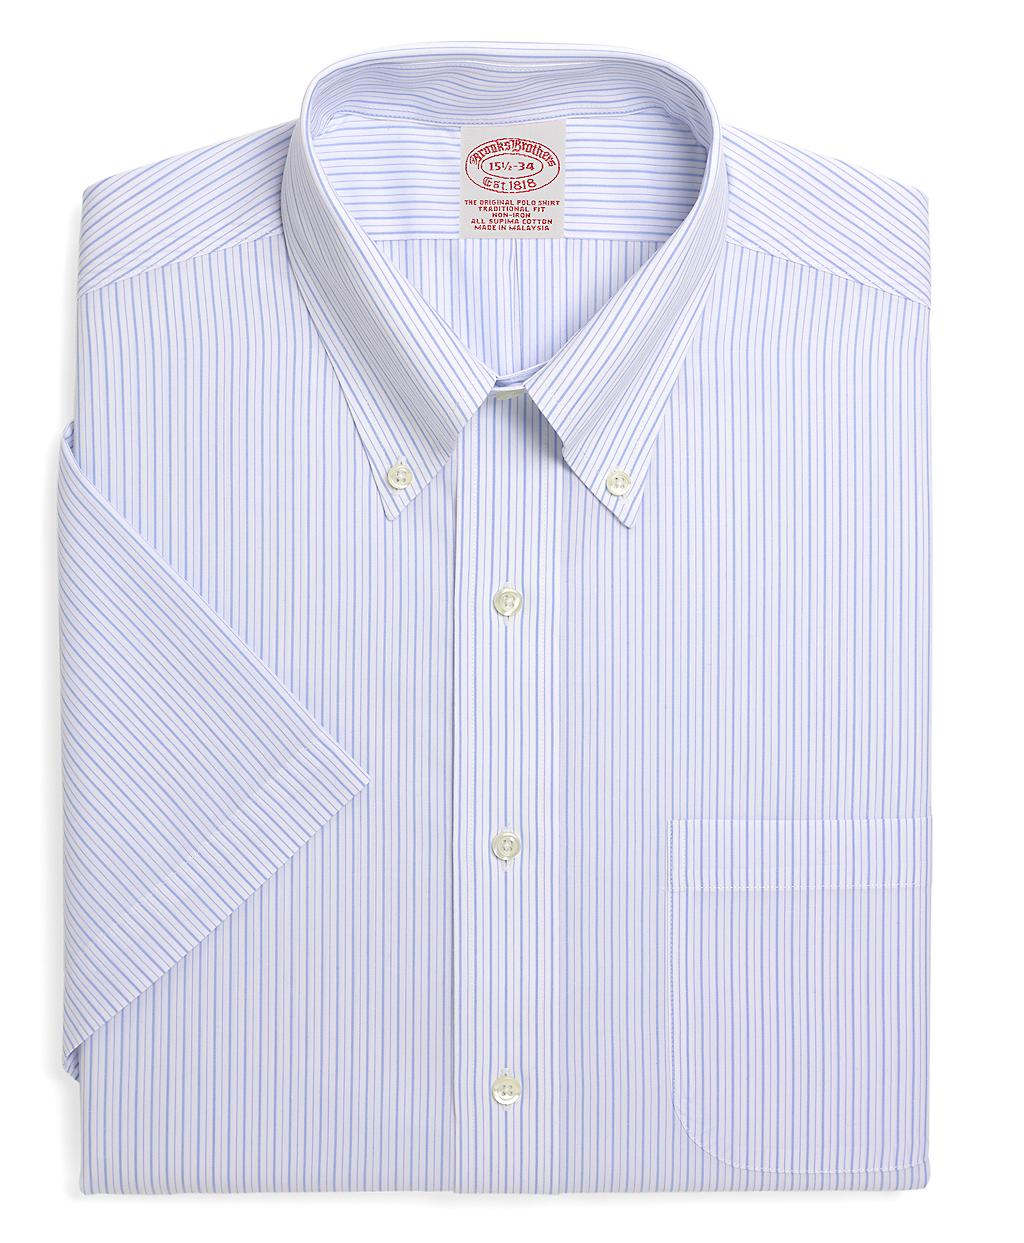 Brooks Brothers Supima Cotton Noniron Traditional Fit